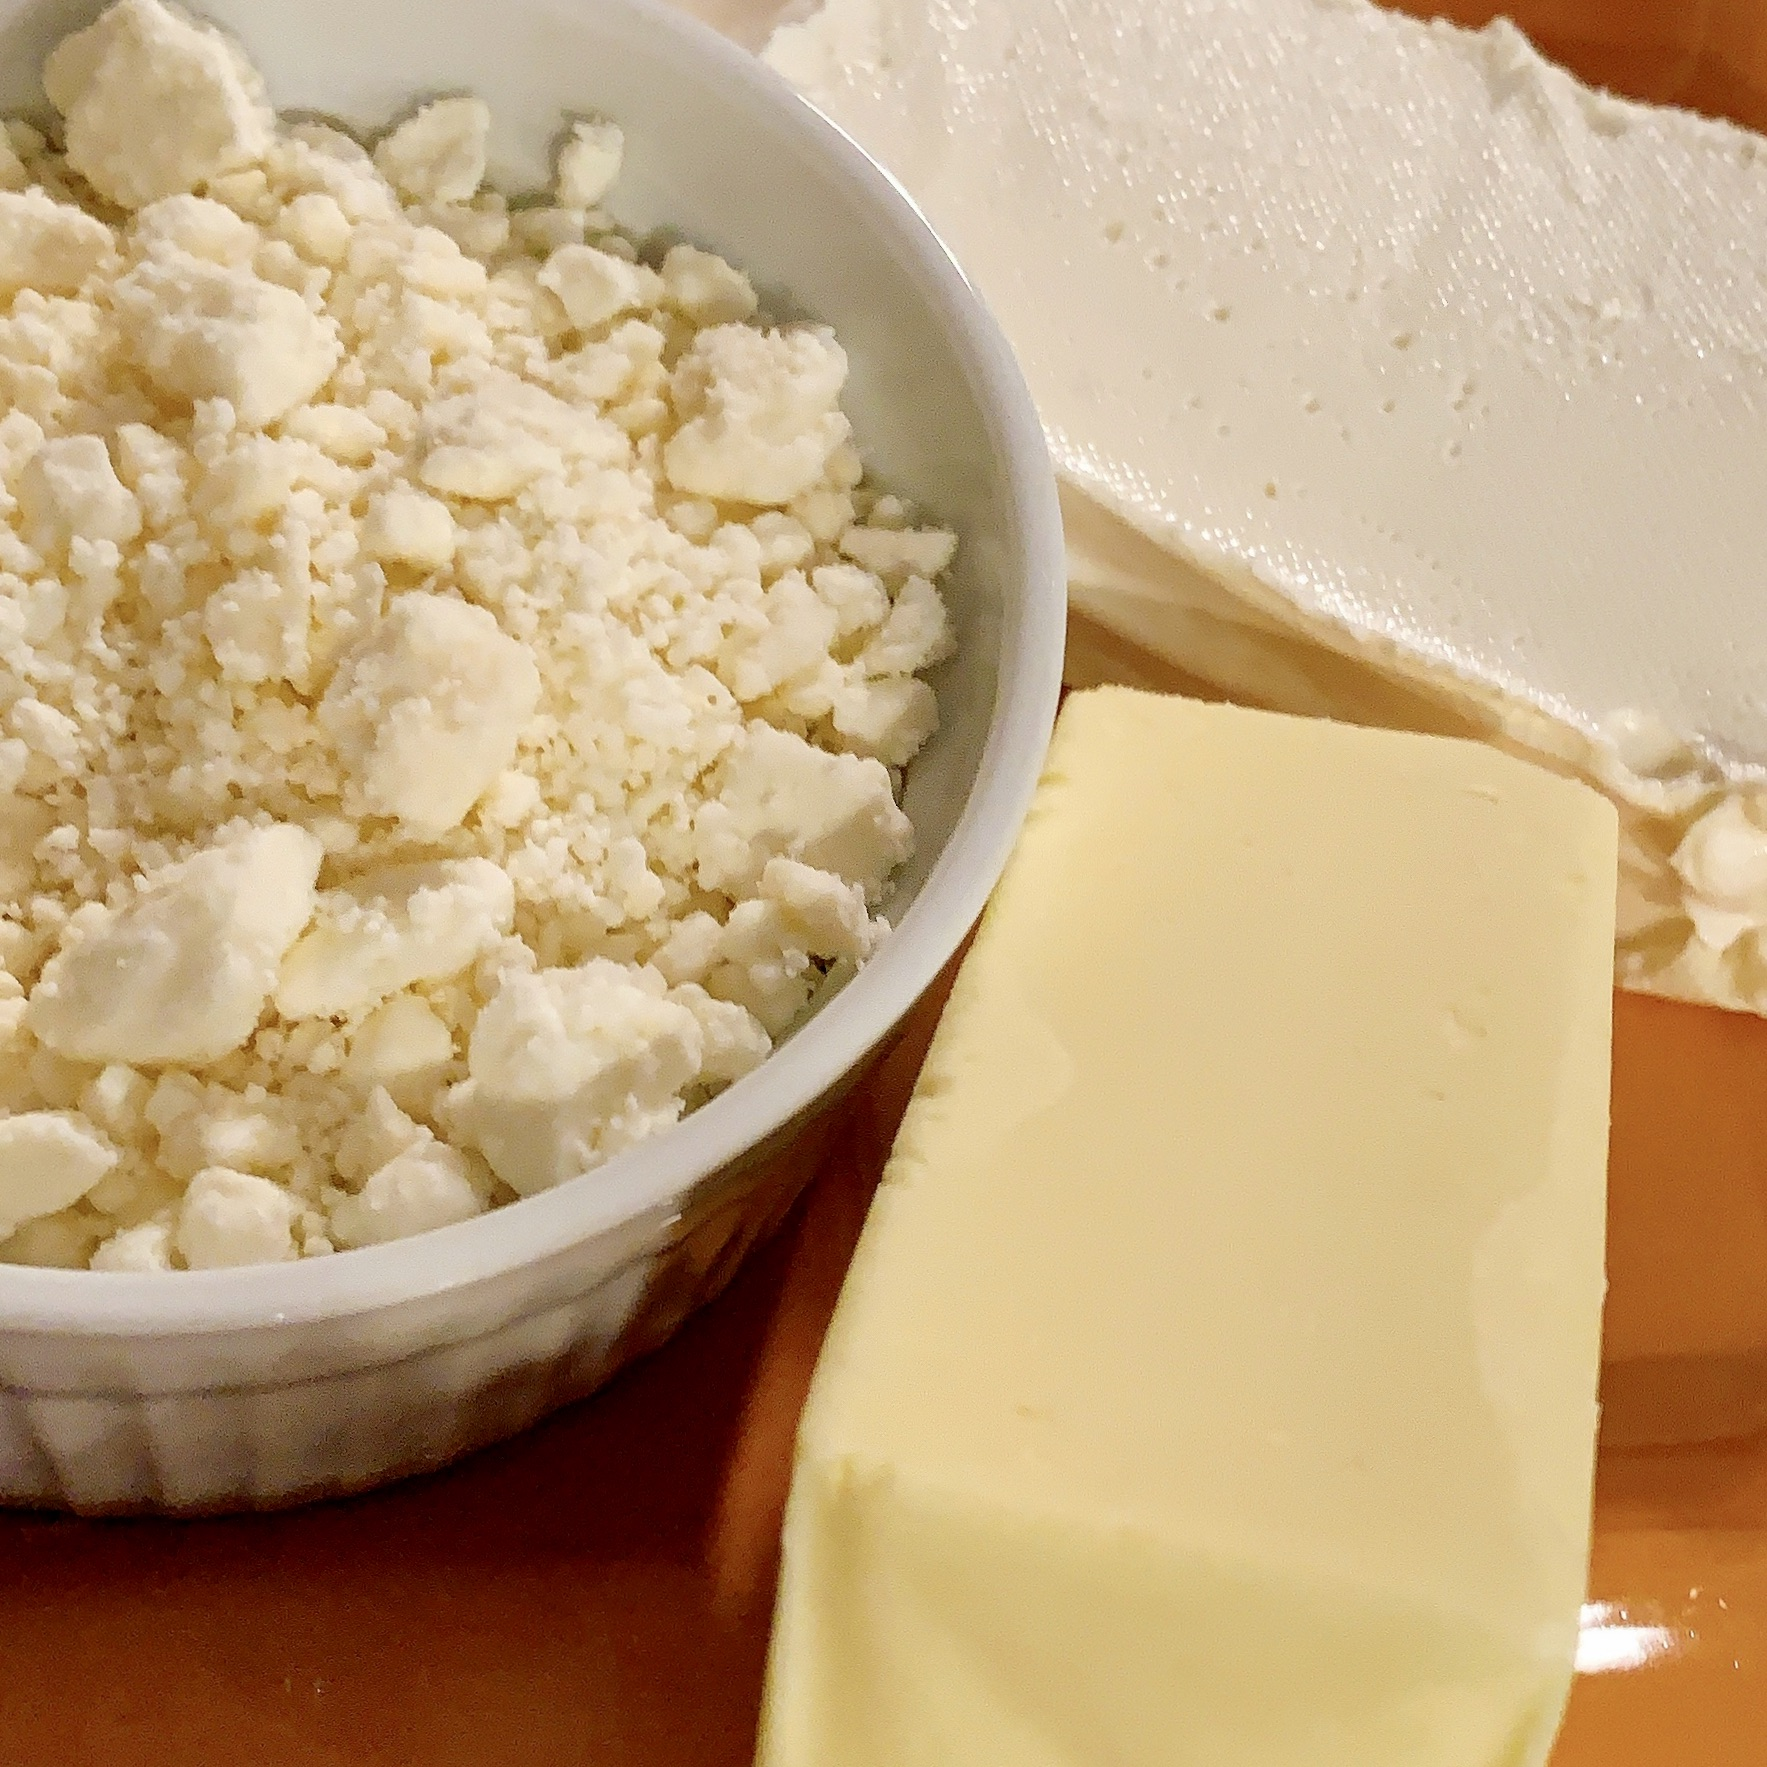 feta cheese, butter and cream cheese are ingredients in the recipe for Feta Phyllo Triangles.